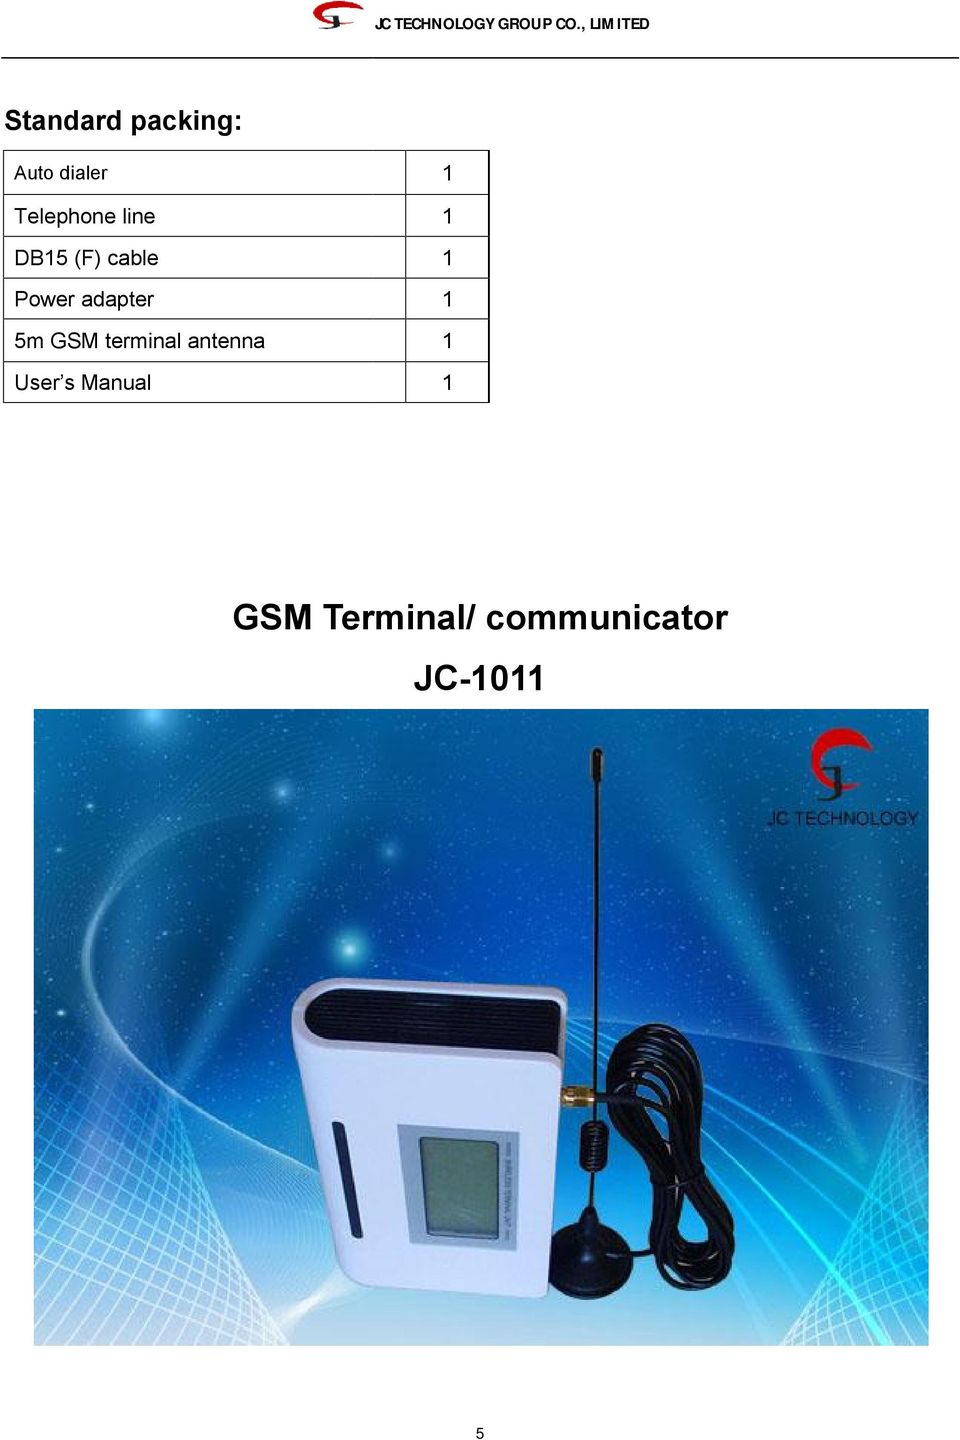 adapter 5m GSM terminal antenna